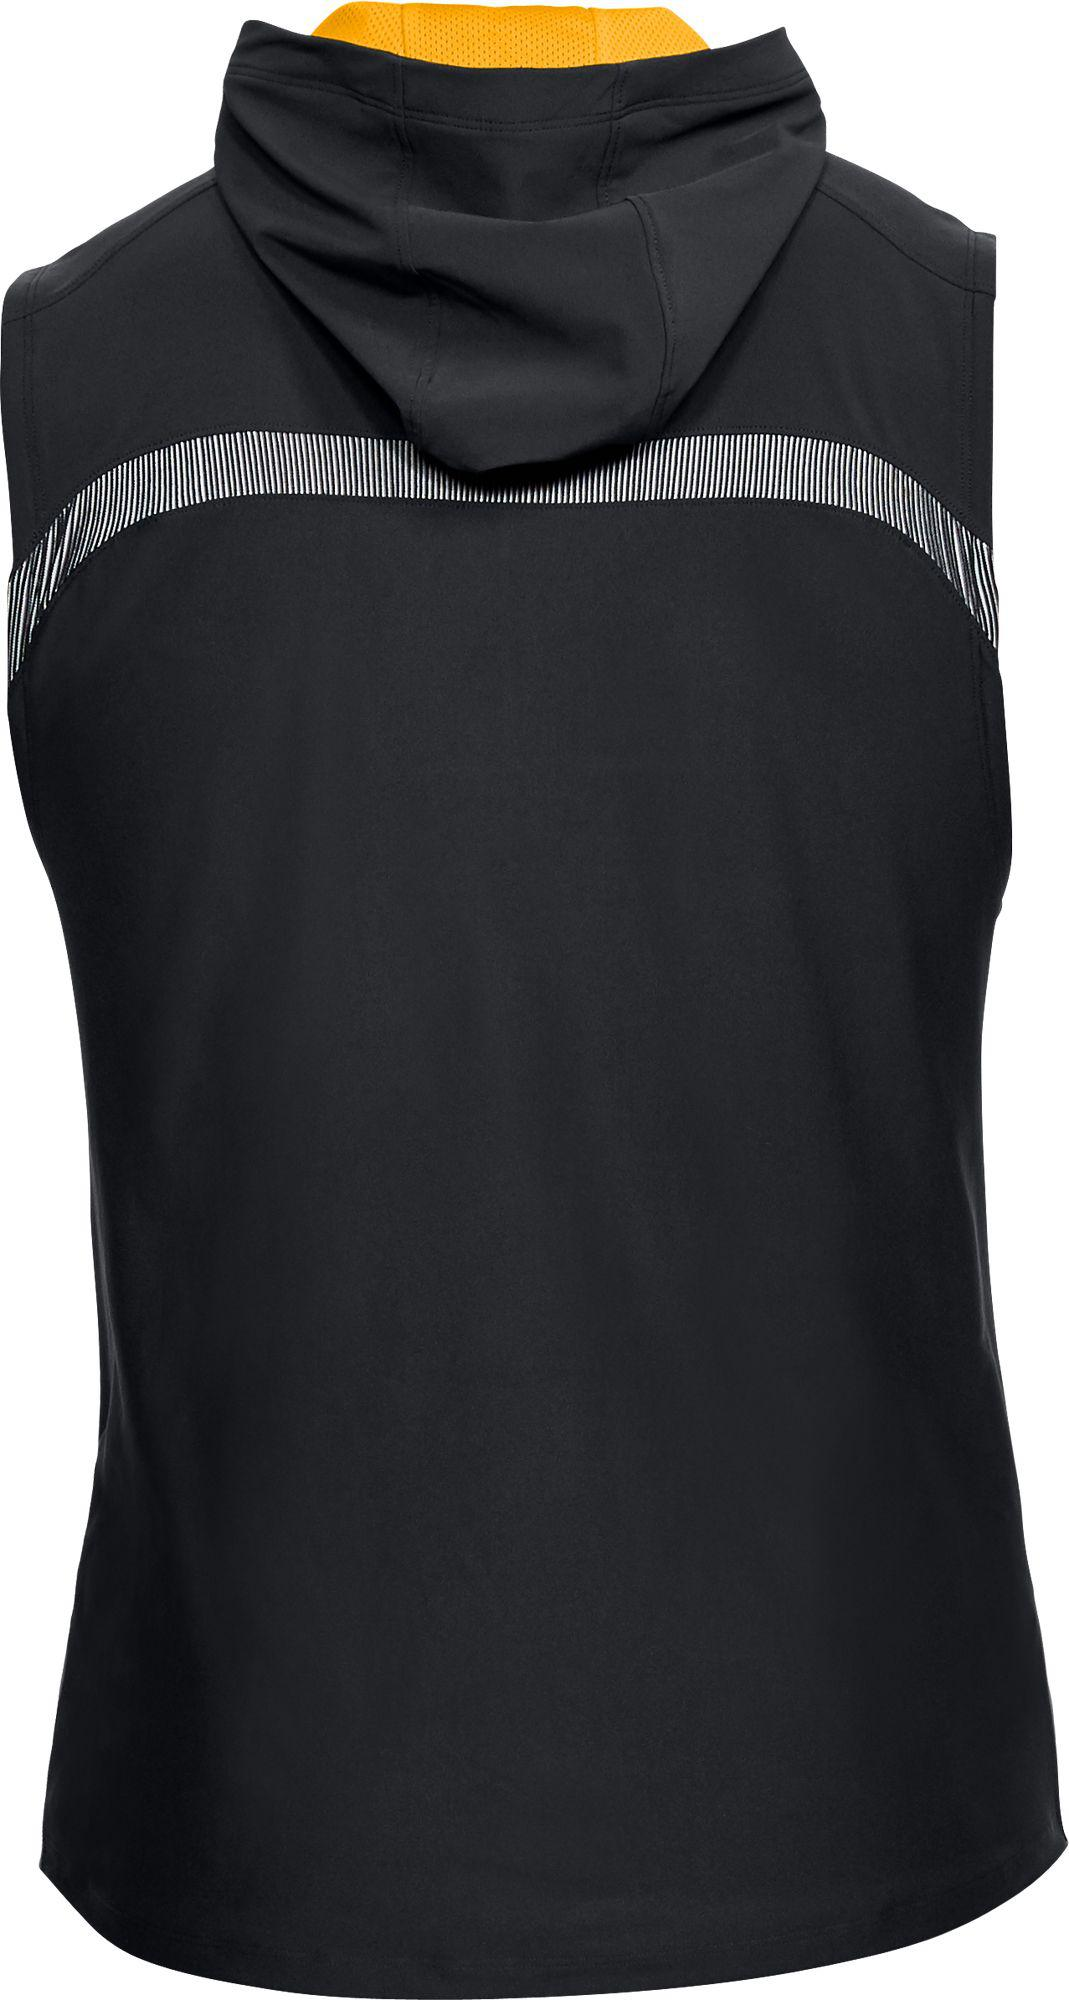 d412f41351e6b Lyst - Under Armour Project Rock Vanish Sleeveless Hoodie in Black ...